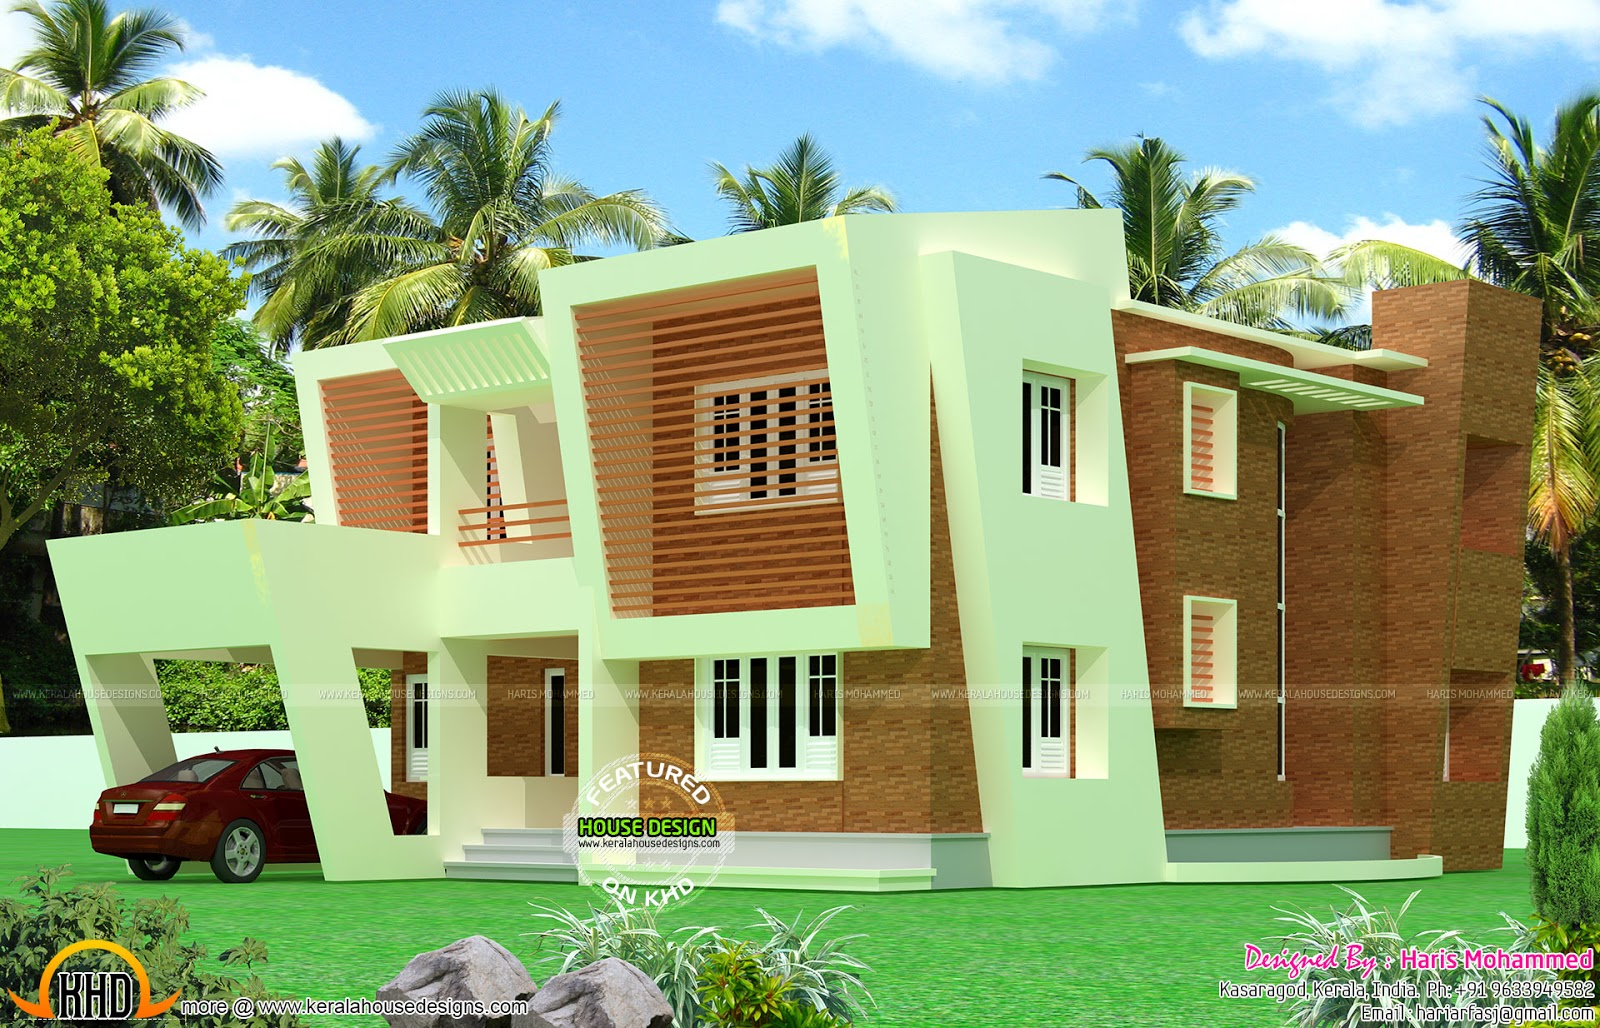 Box type house designs house design for House plans under 150k